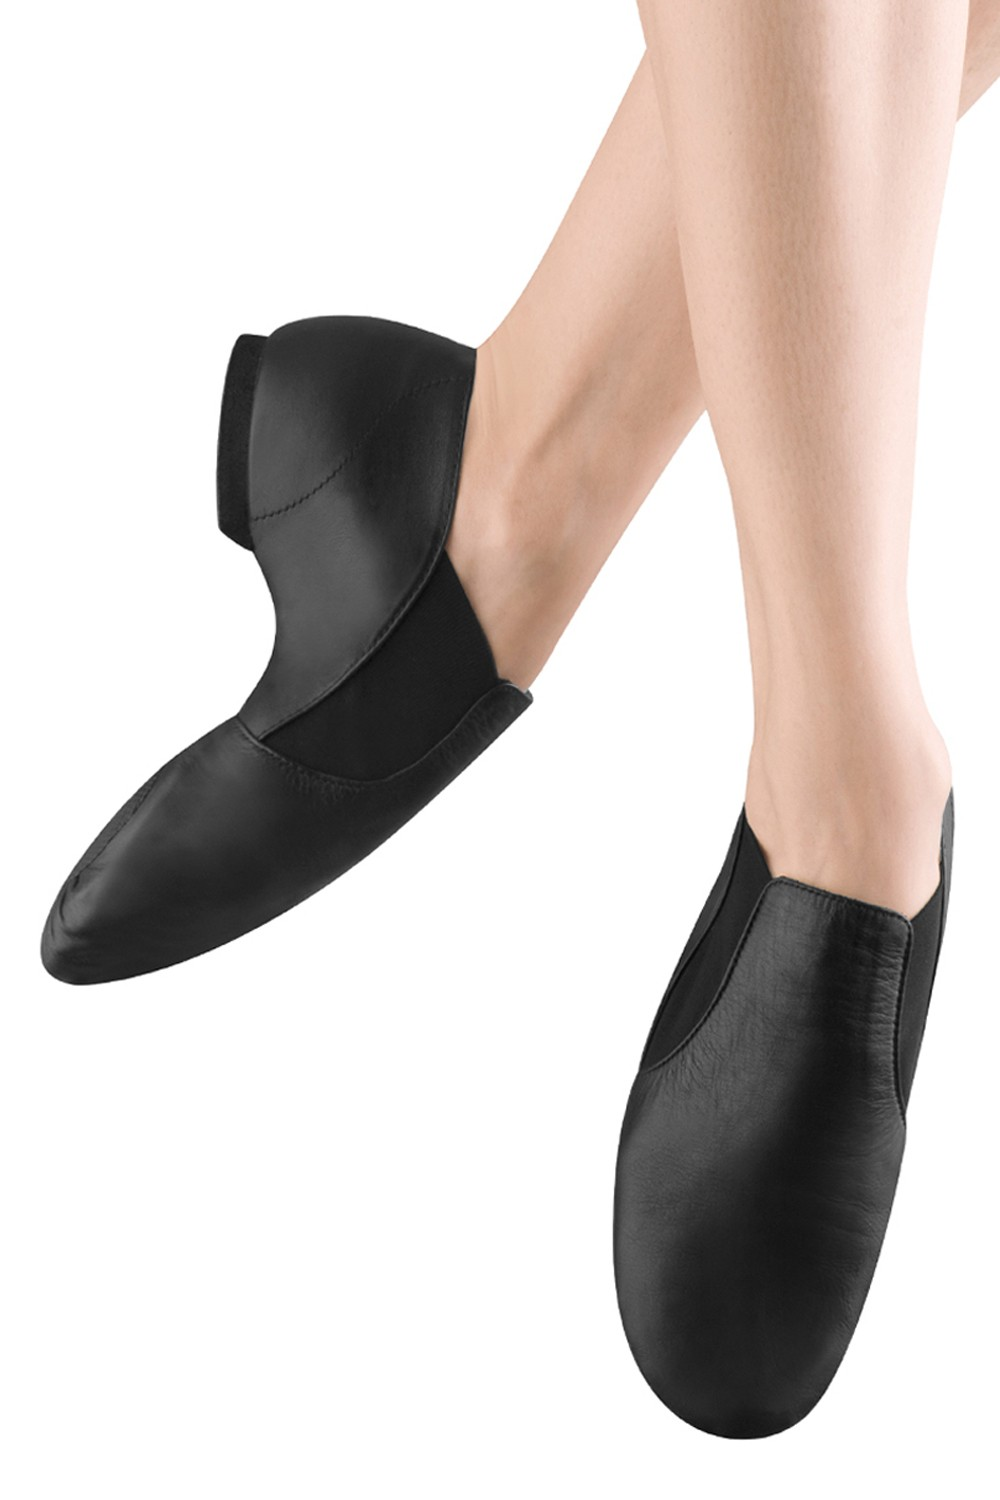 Elasta Bootie - Girls Girl's Jazz Shoes